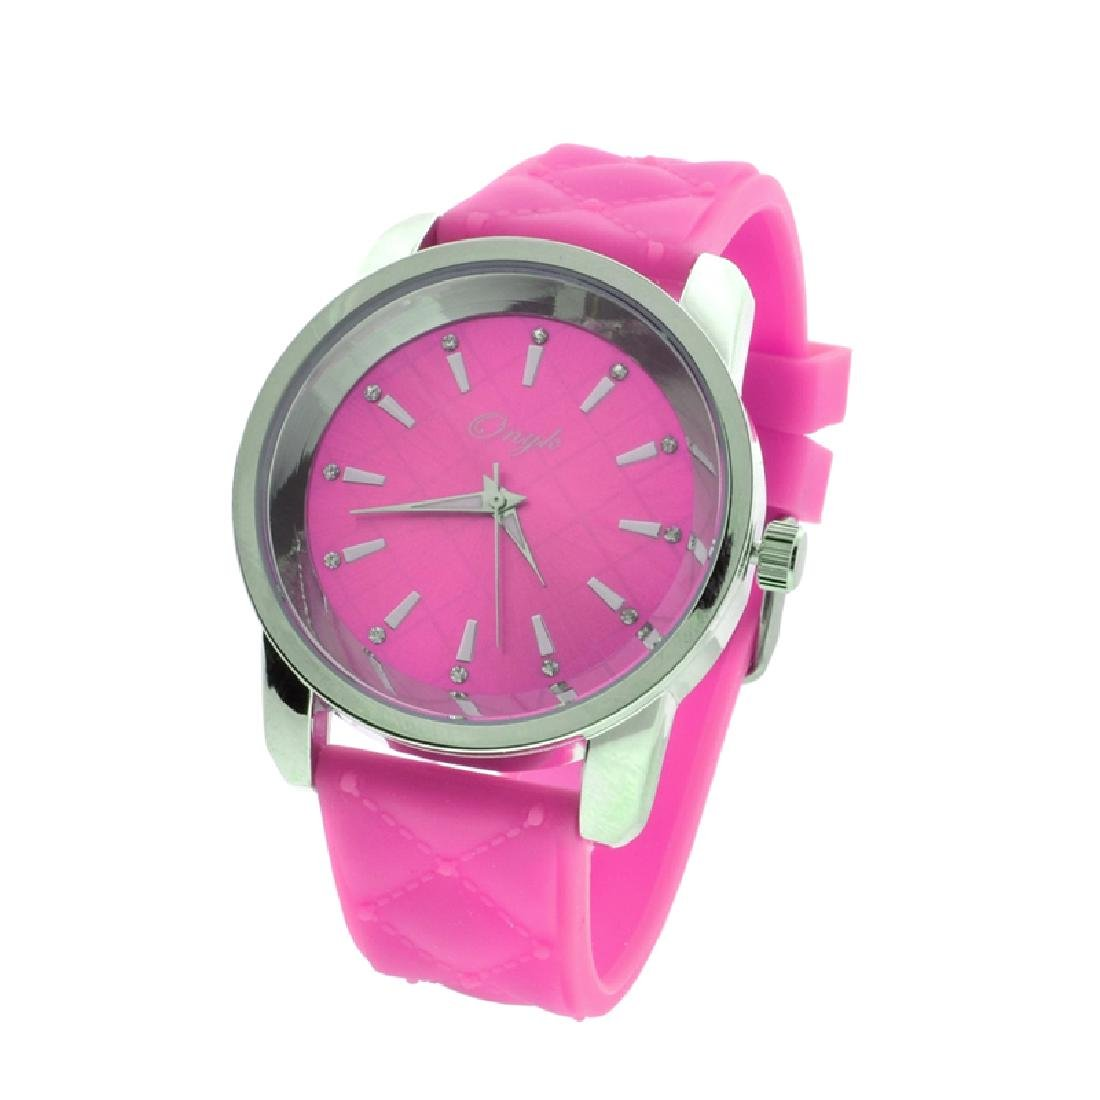 New Onyk, Stainless Steel Back, Water Resistant, Pink